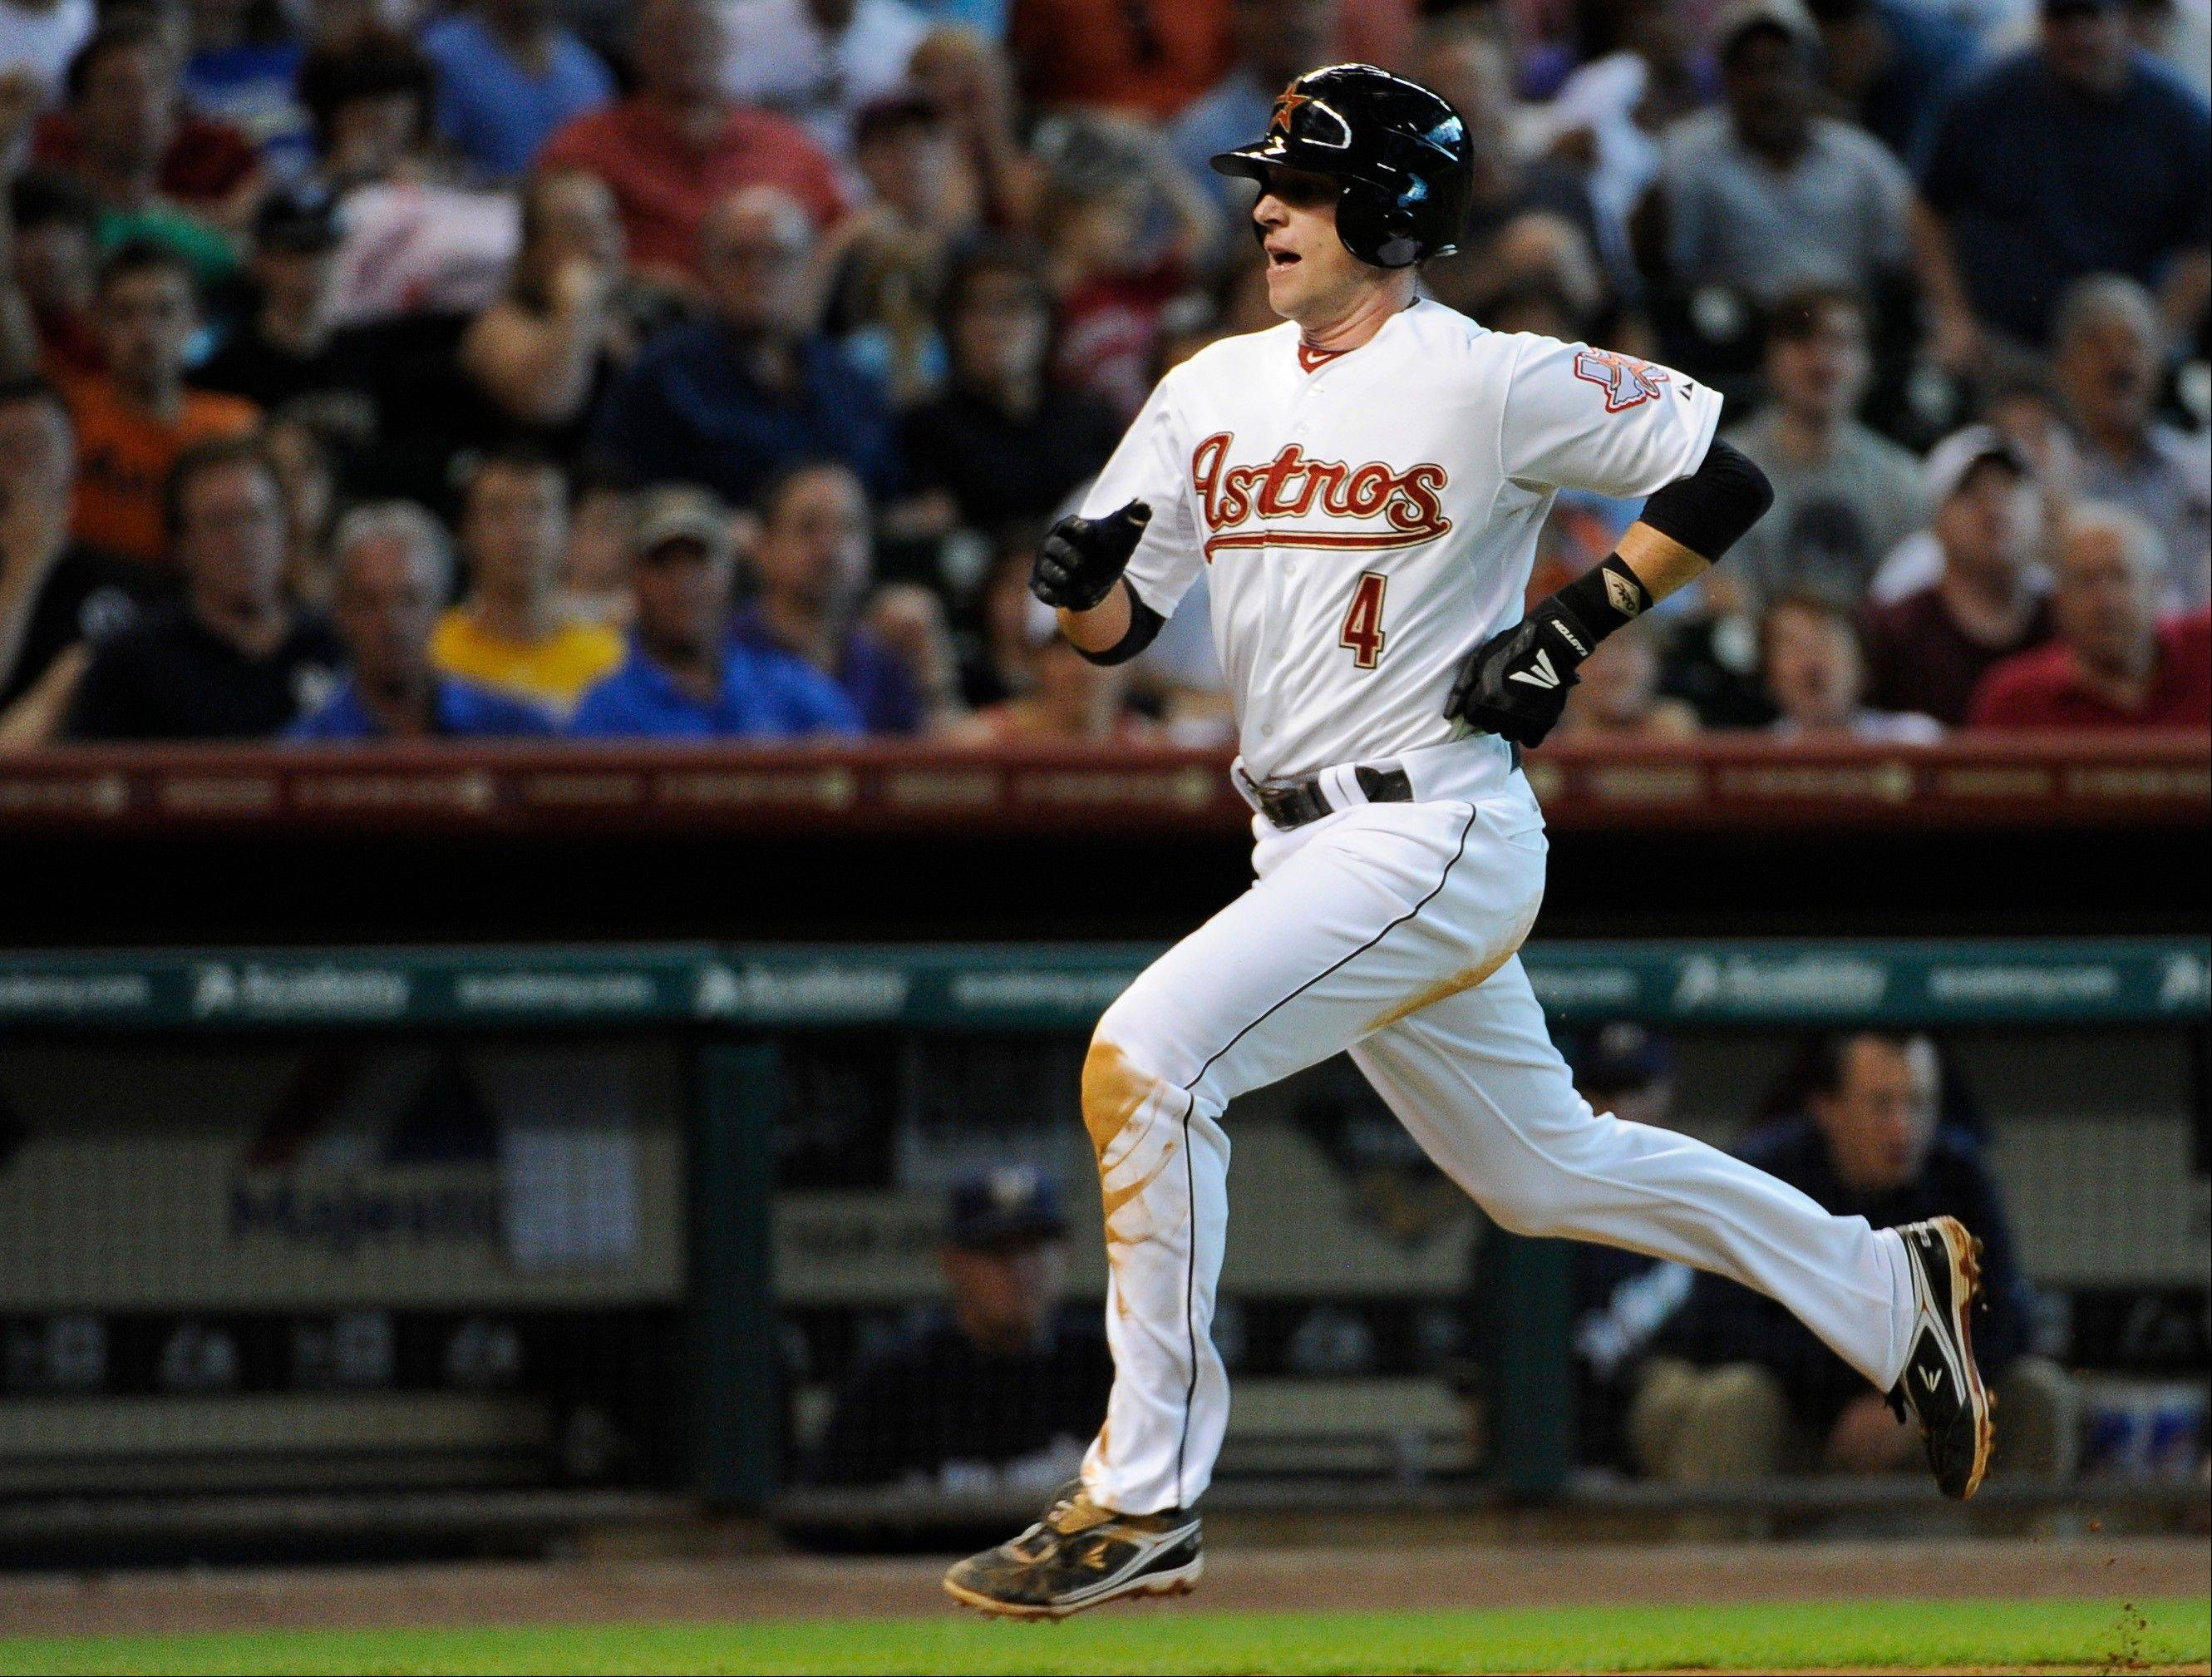 The Houston Astros' Jed Lowrie races home to score from third on a Jason Castro sacrifice fly against the Milwaukee Brewers Saturday during the fifth inning in Houston. The Astros won 6-3.